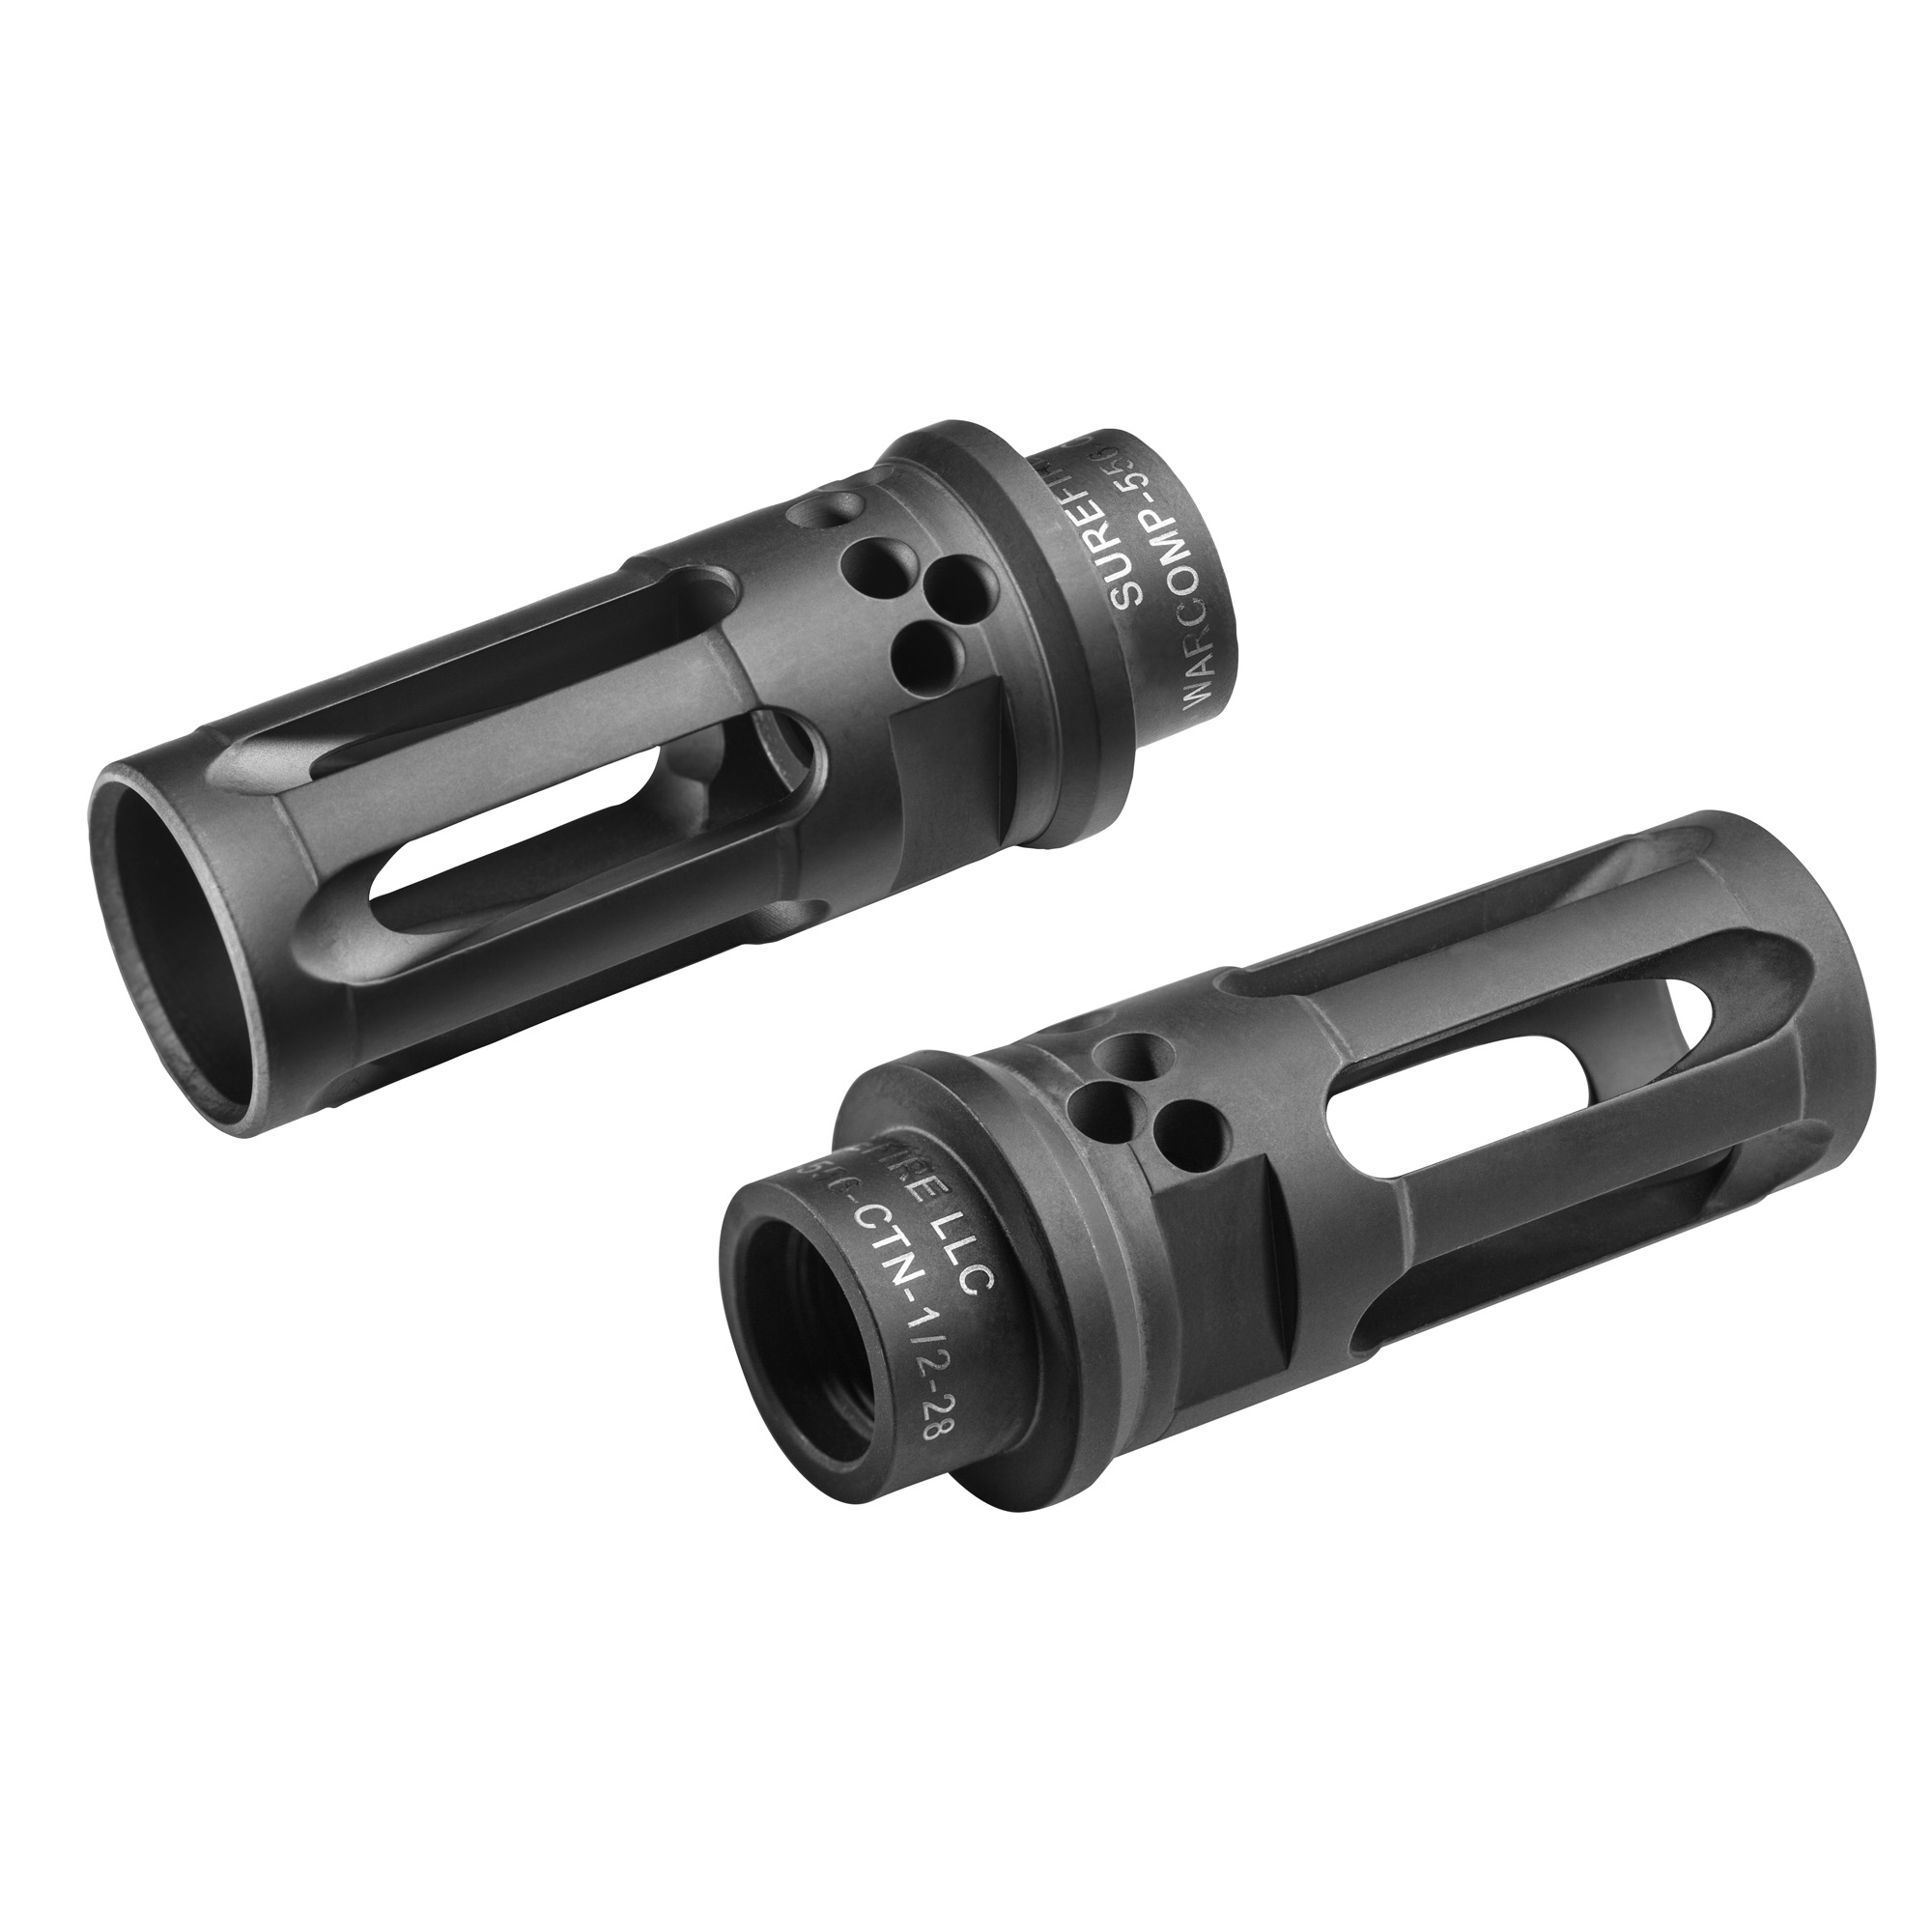 """SureFire WARCOMP-556-CTN is a closed tine flash hider that is neutrally ported to aid in recoil management. Compared to that of the open tine adapters"""" the WARCOMP-CTN for 5.56 caliber weapons mimics that of a traditional birdcage flash hider along with being a rock solid mounting option for SOCOM Series Fast-Attach(R) suppressors. The muzzle device also has wrench flats machined into the sides of the adapter for aid in installation. The closed tine option does not have as much flash reduction to that of the open tine adapter but still is very capable."""